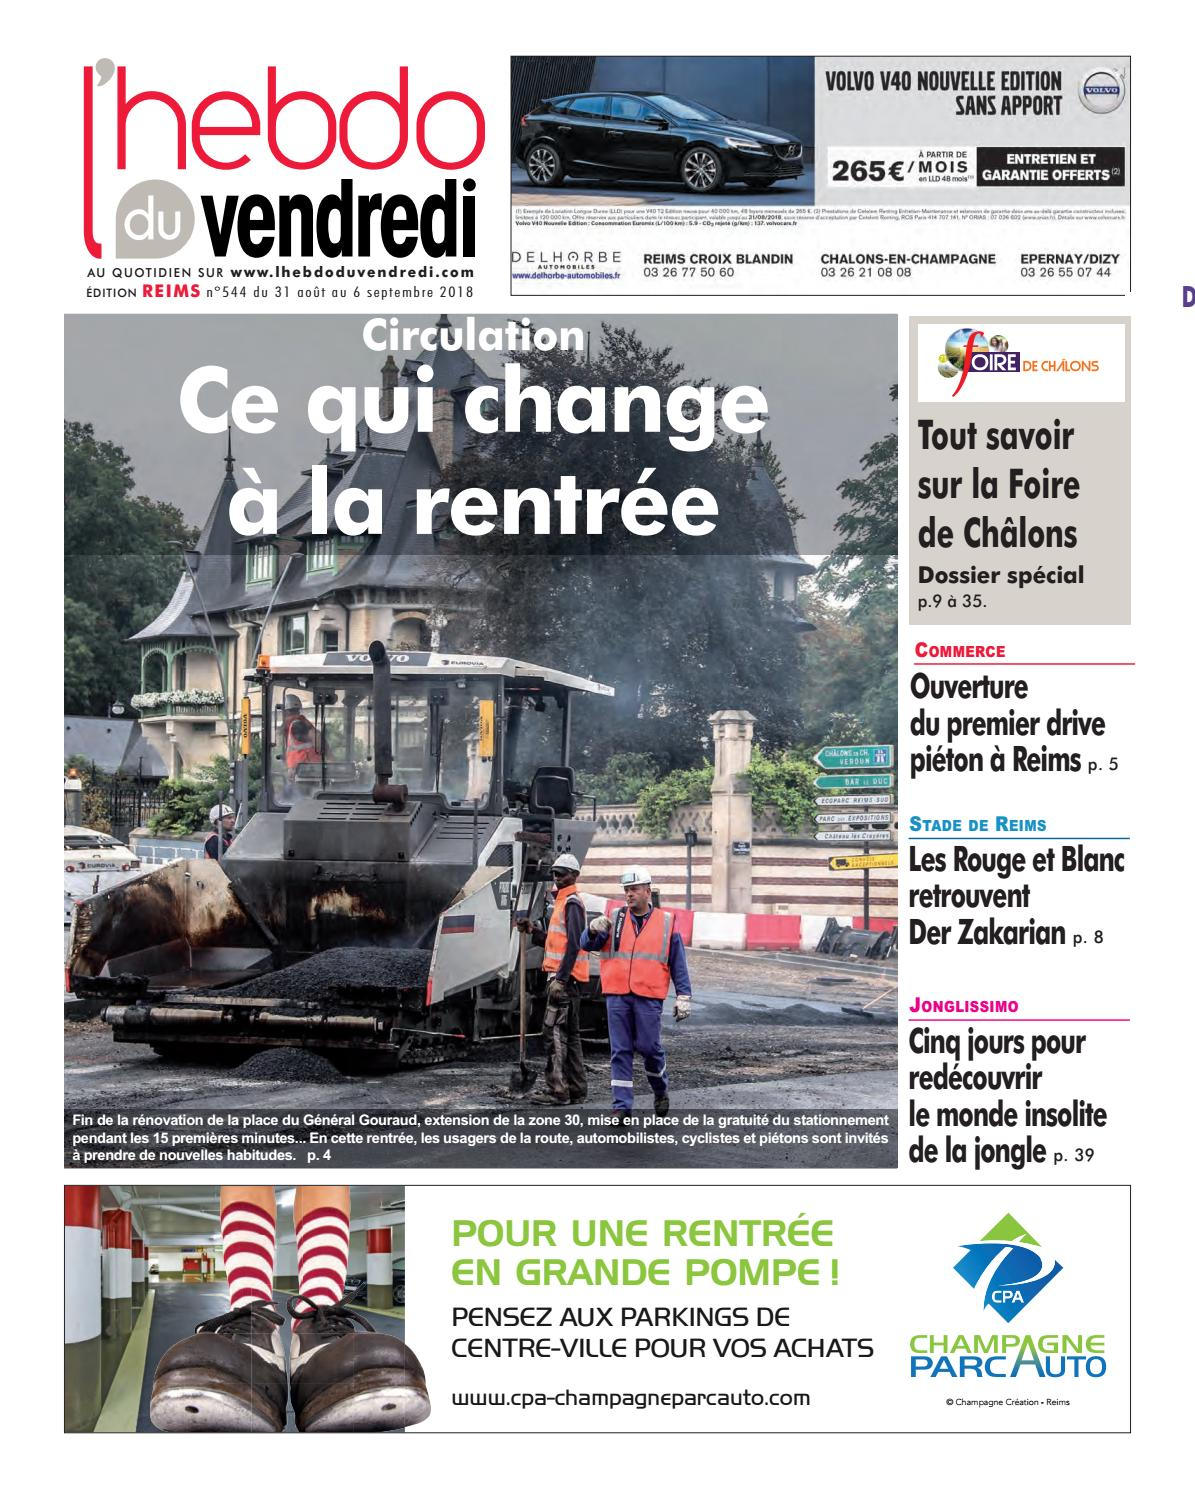 Lhebdo Du Vendredi Reims 544 By Kilkoa Issuu